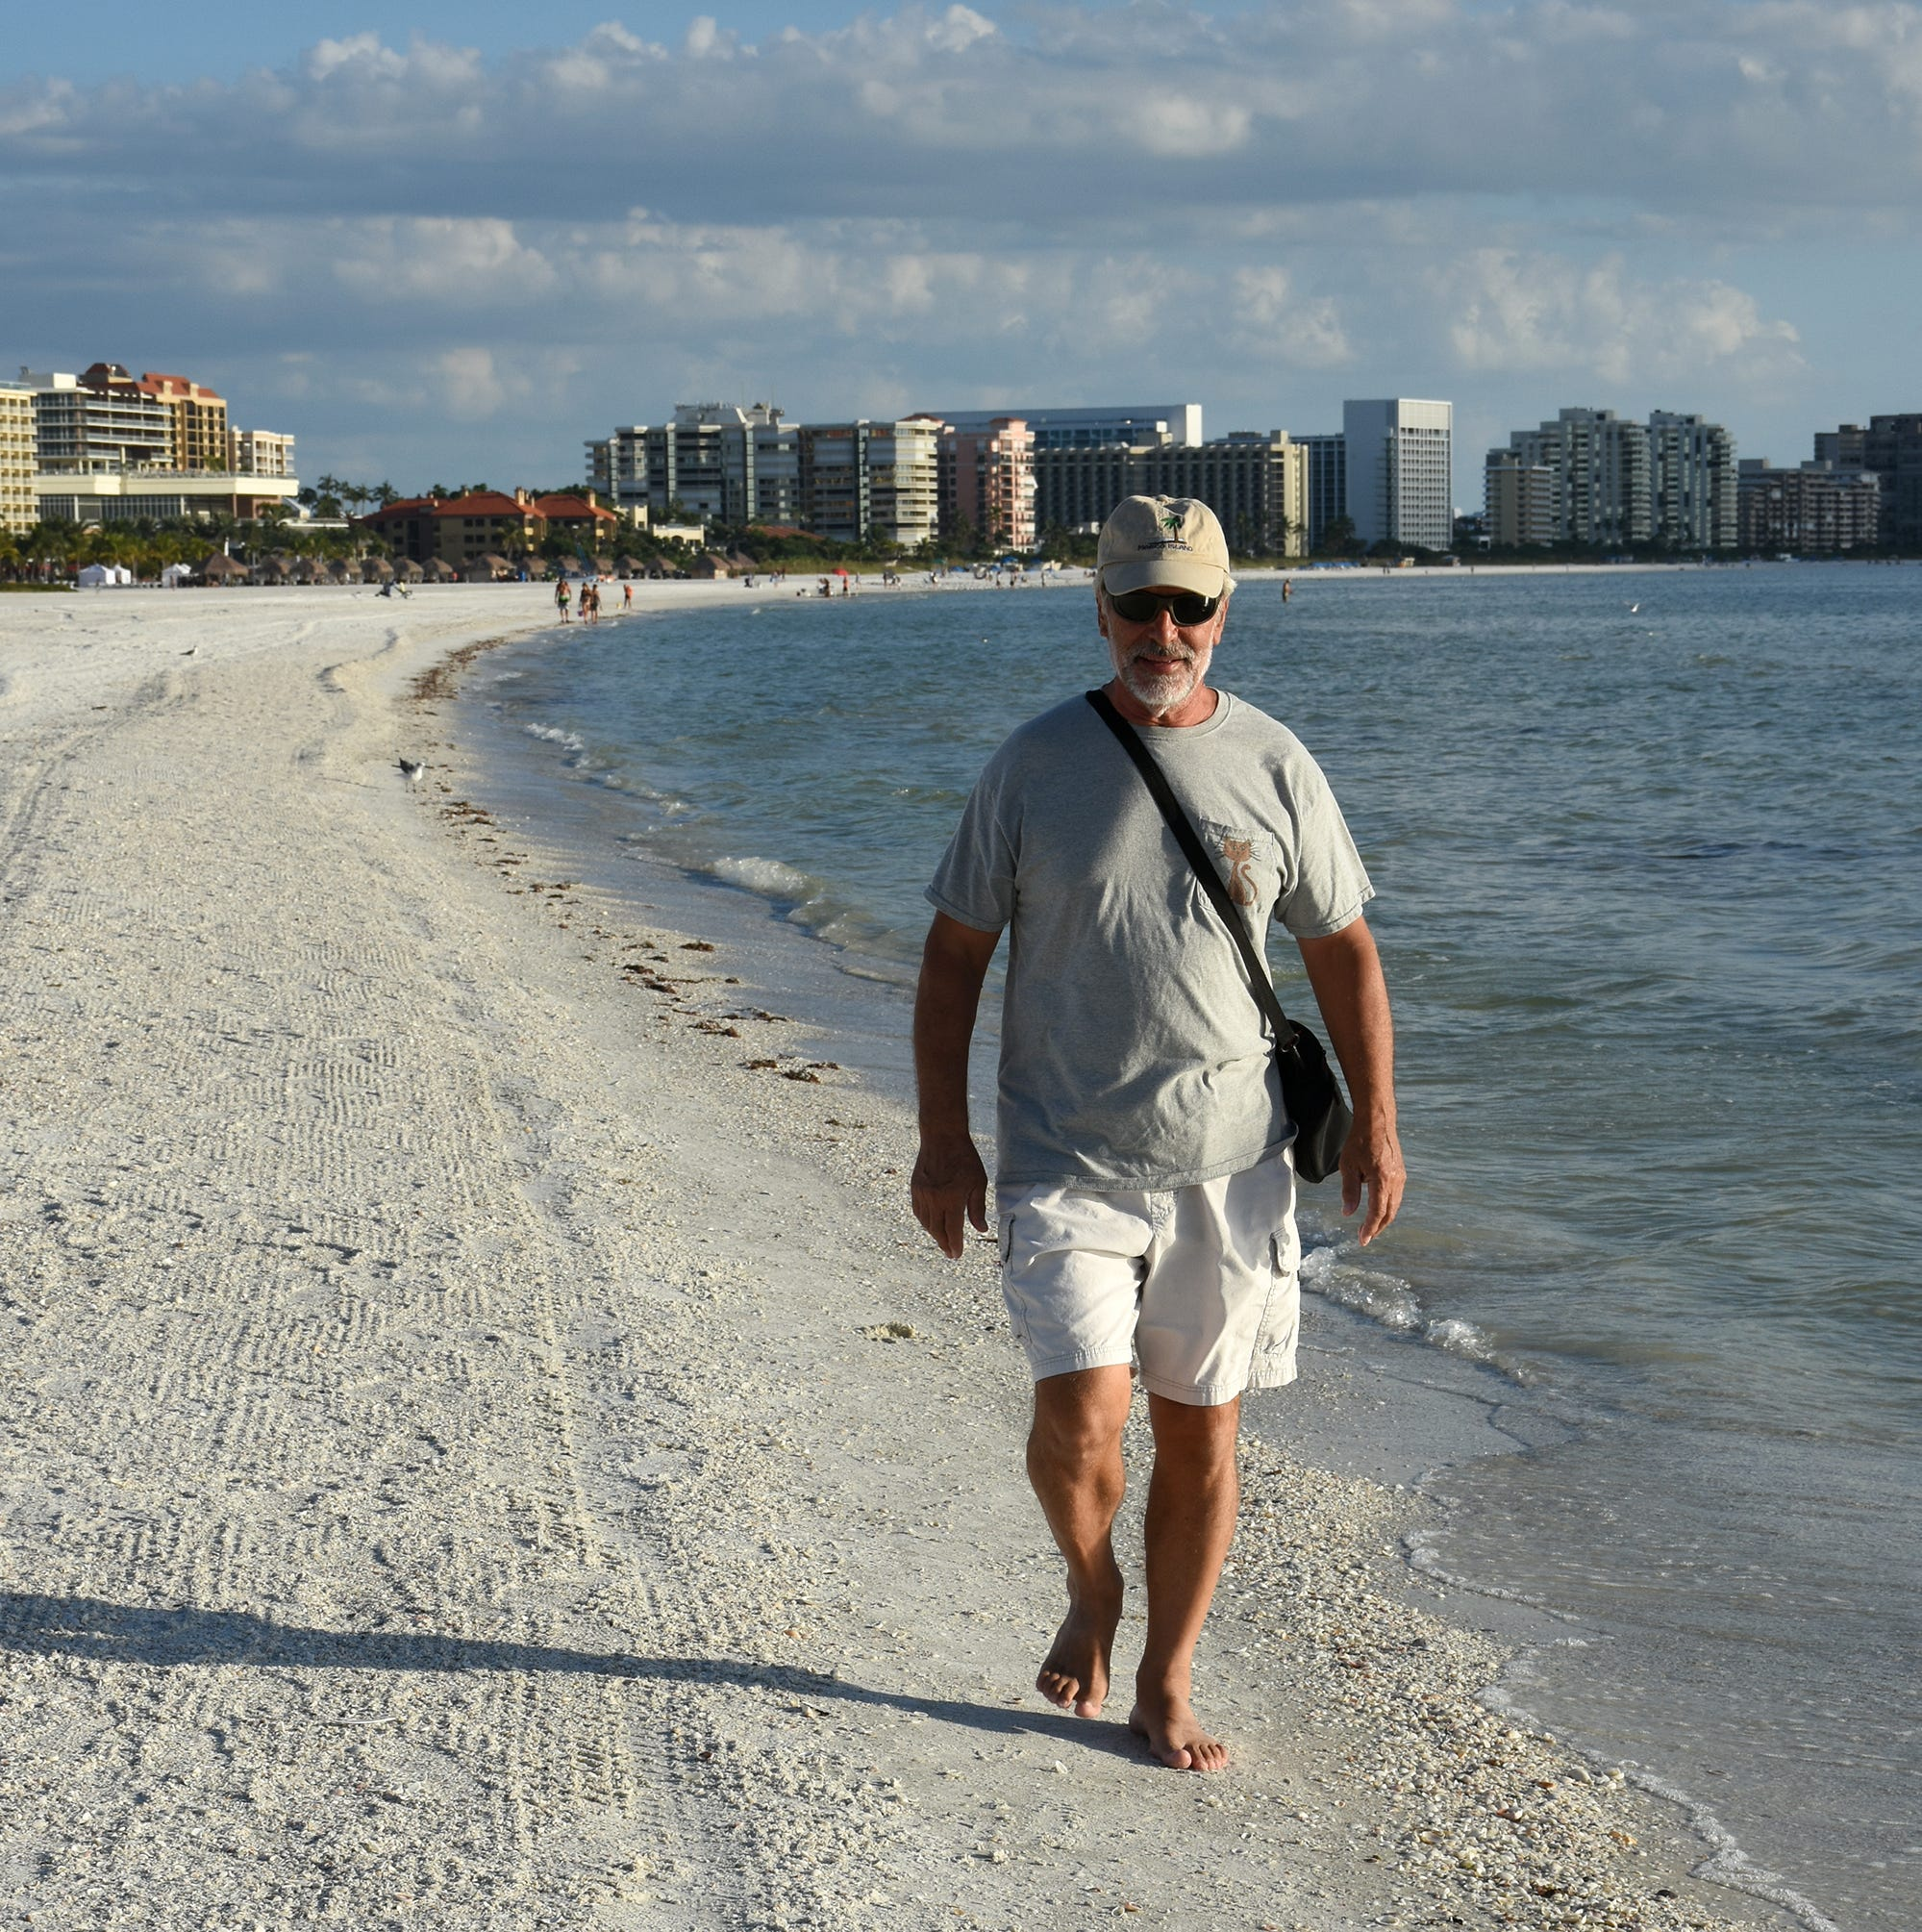 Several Marco Island residents raise concerns about beach raking practices